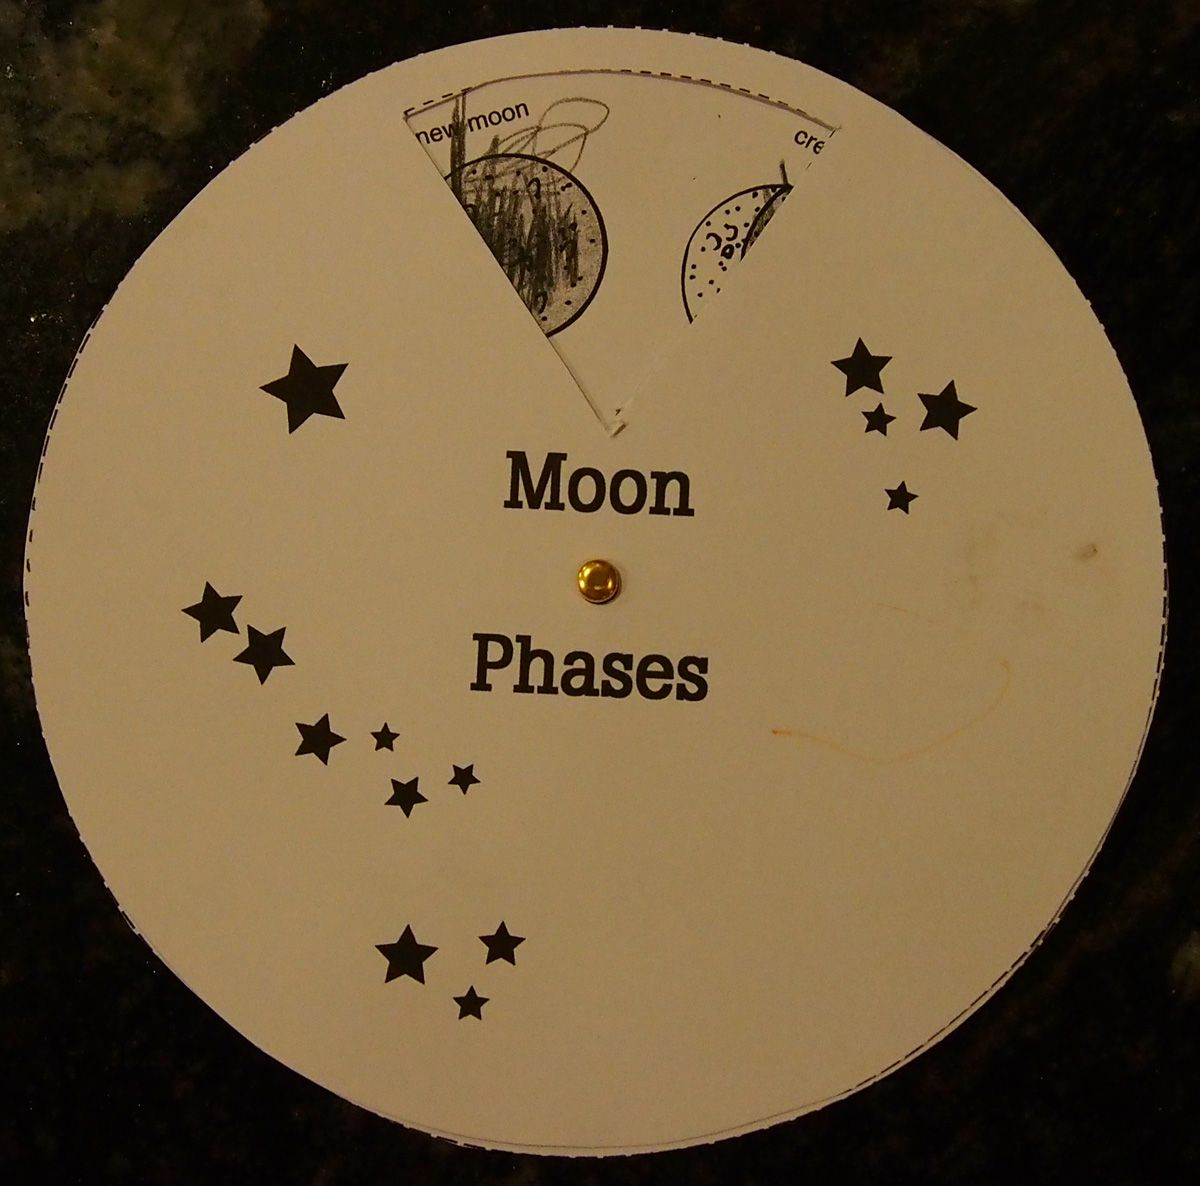 Turning Moon Phase